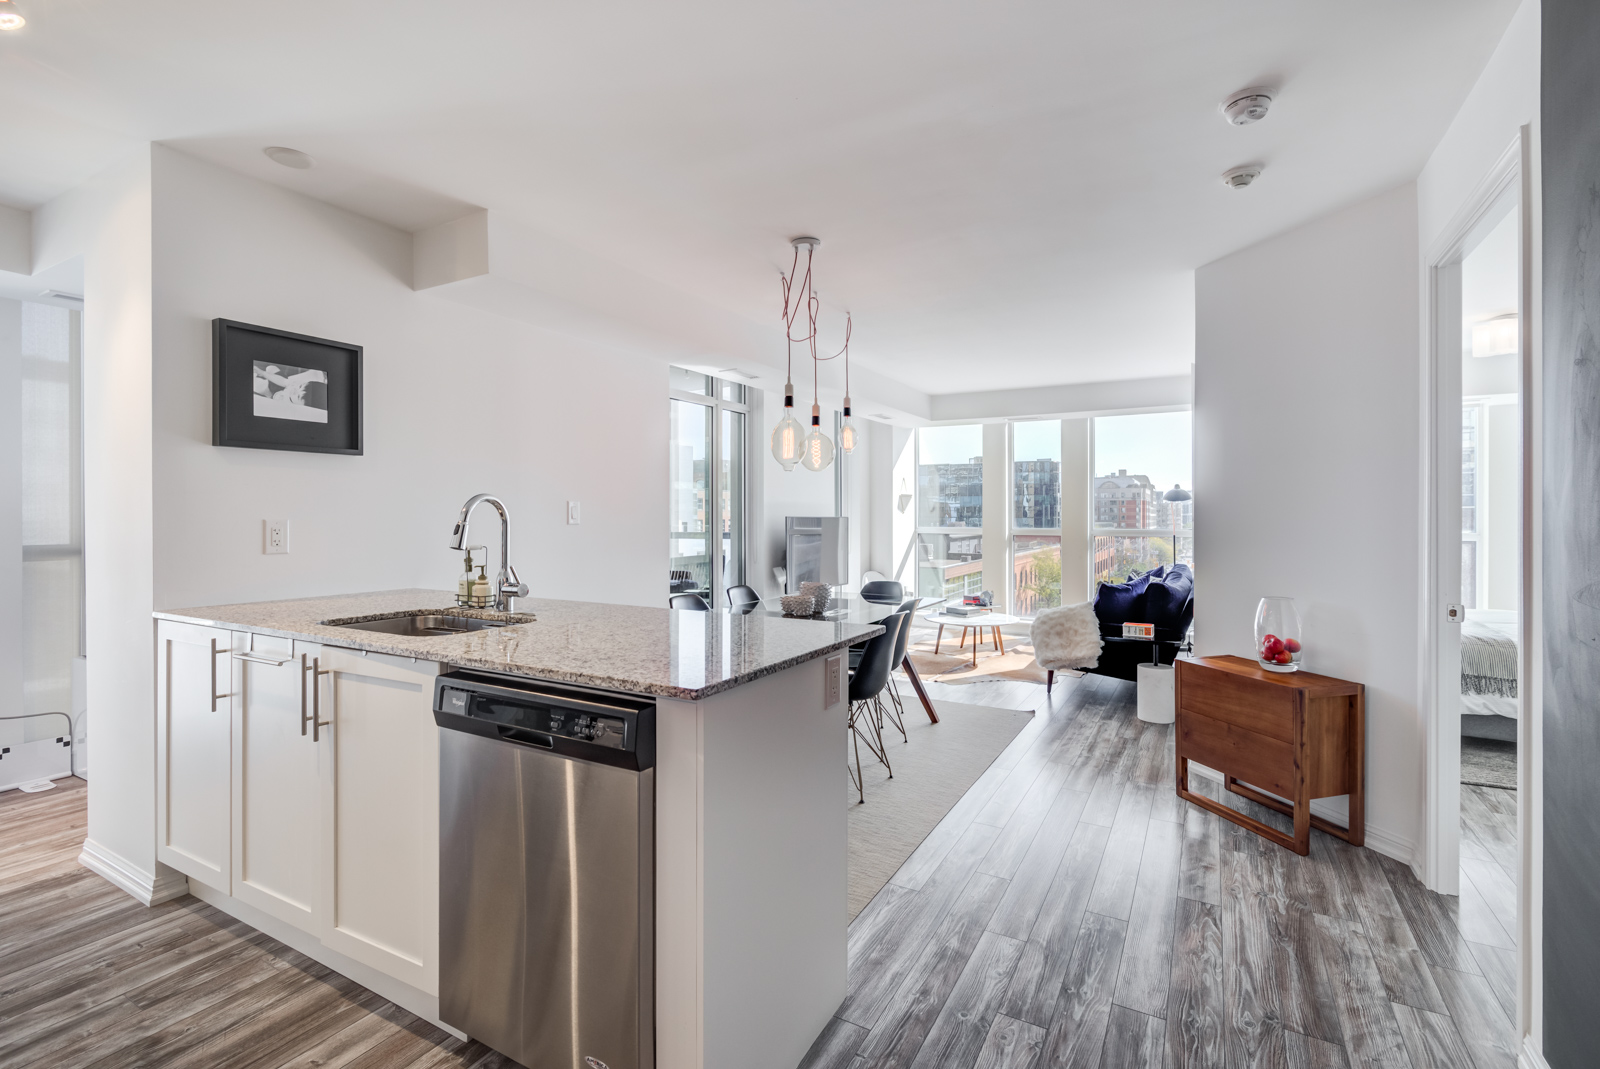 400 Adelaide St E Unit 704 Moss Park; condos kitchen, living room and dining room with laminate floors.